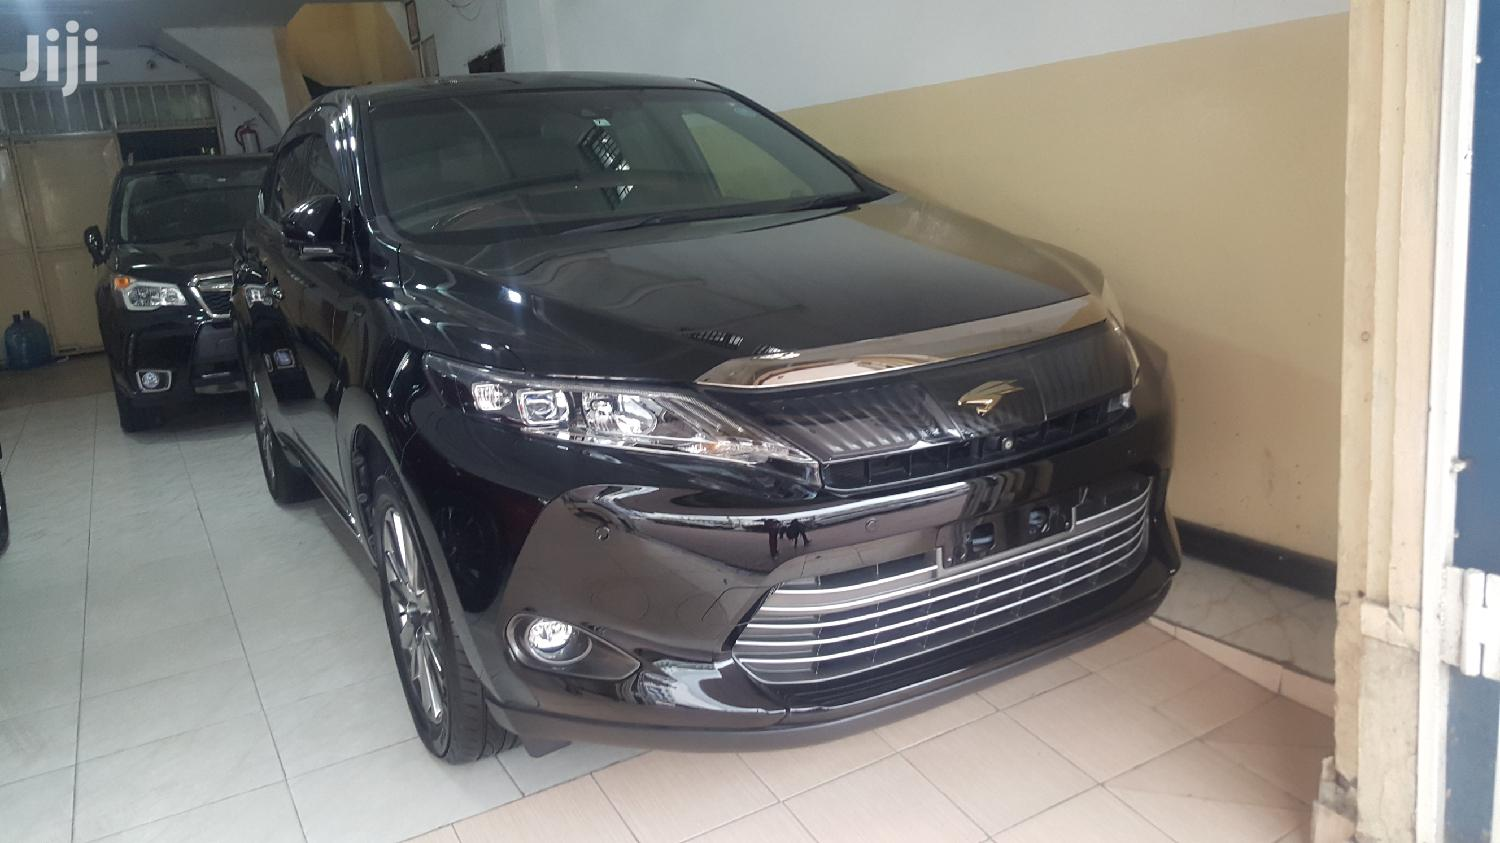 Toyota Harrier 2013 Black | Cars for sale in Moi Avenue, Mombasa, Kenya